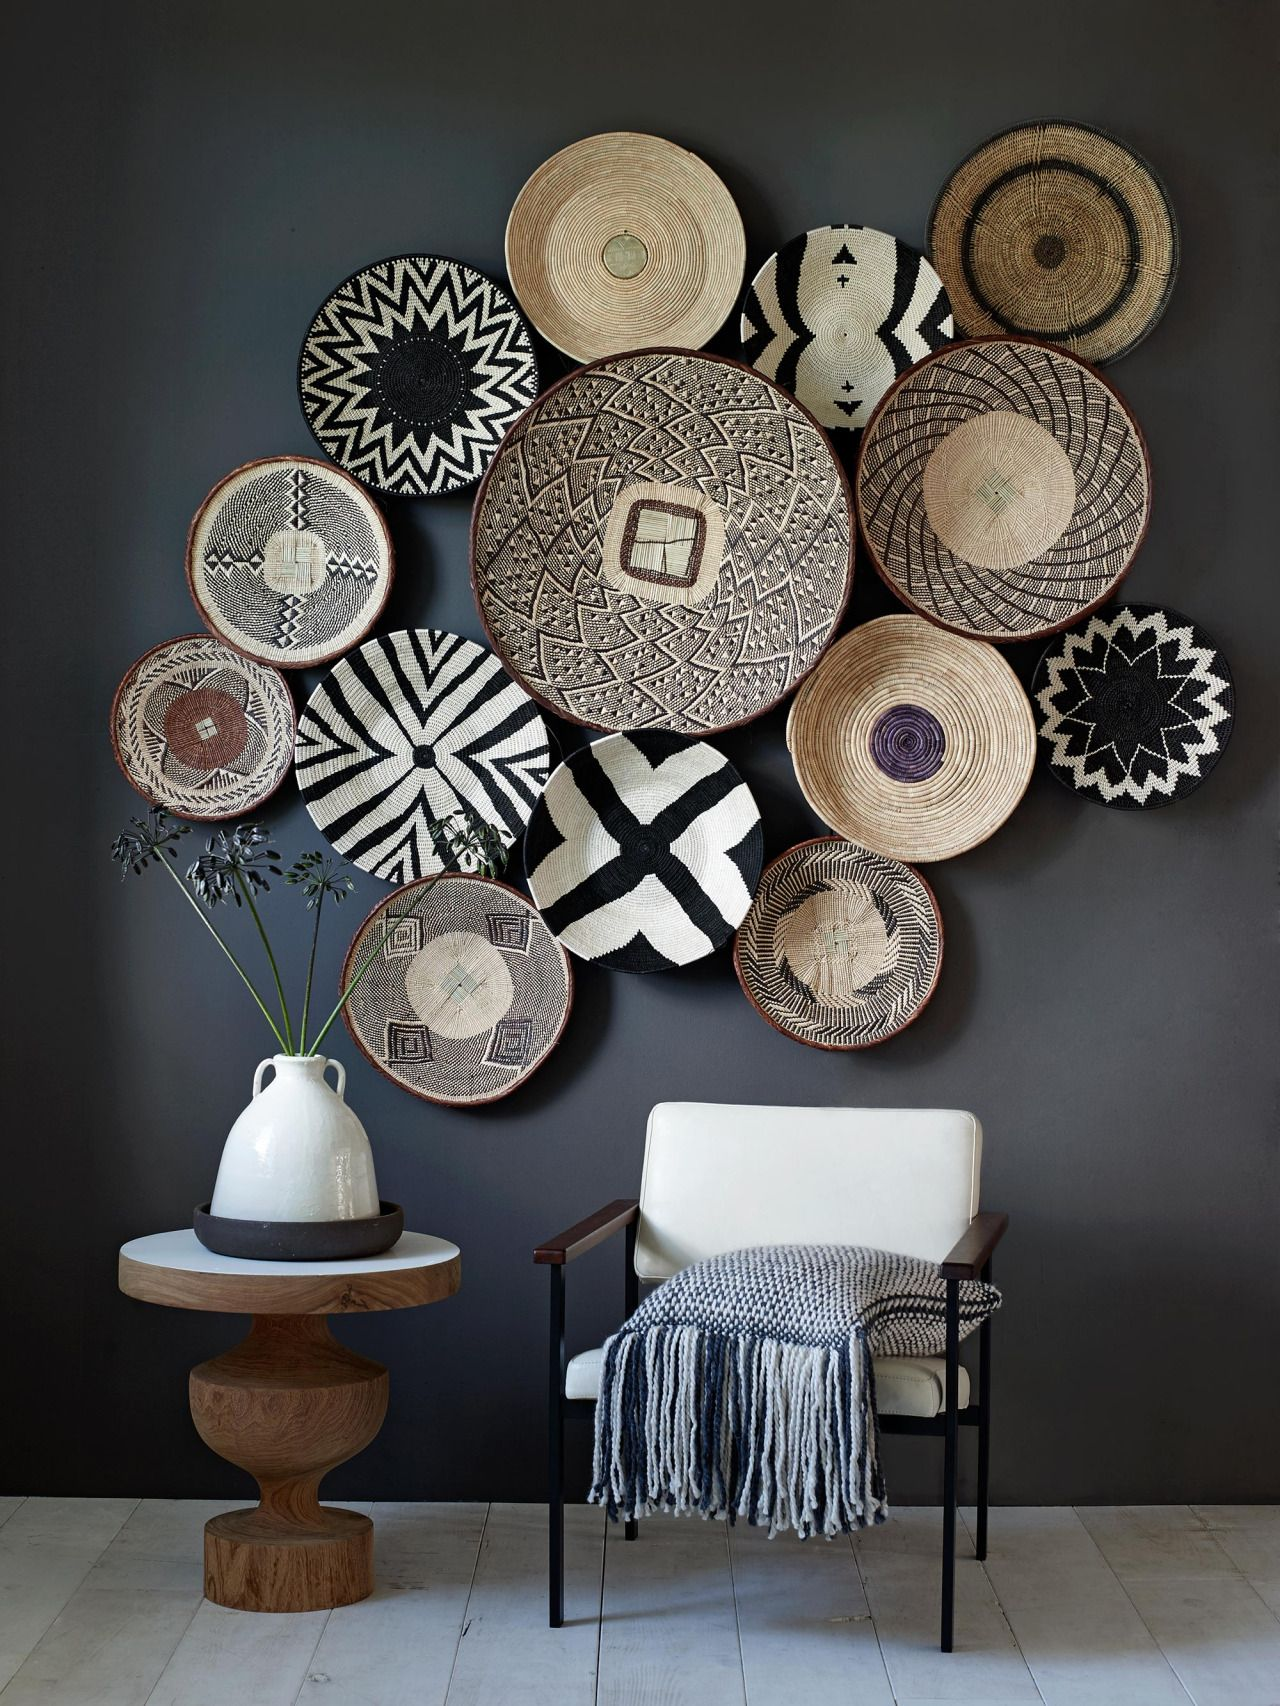 Pin By Diy Home Decor On Diy Home Decor In 2019 Handmade